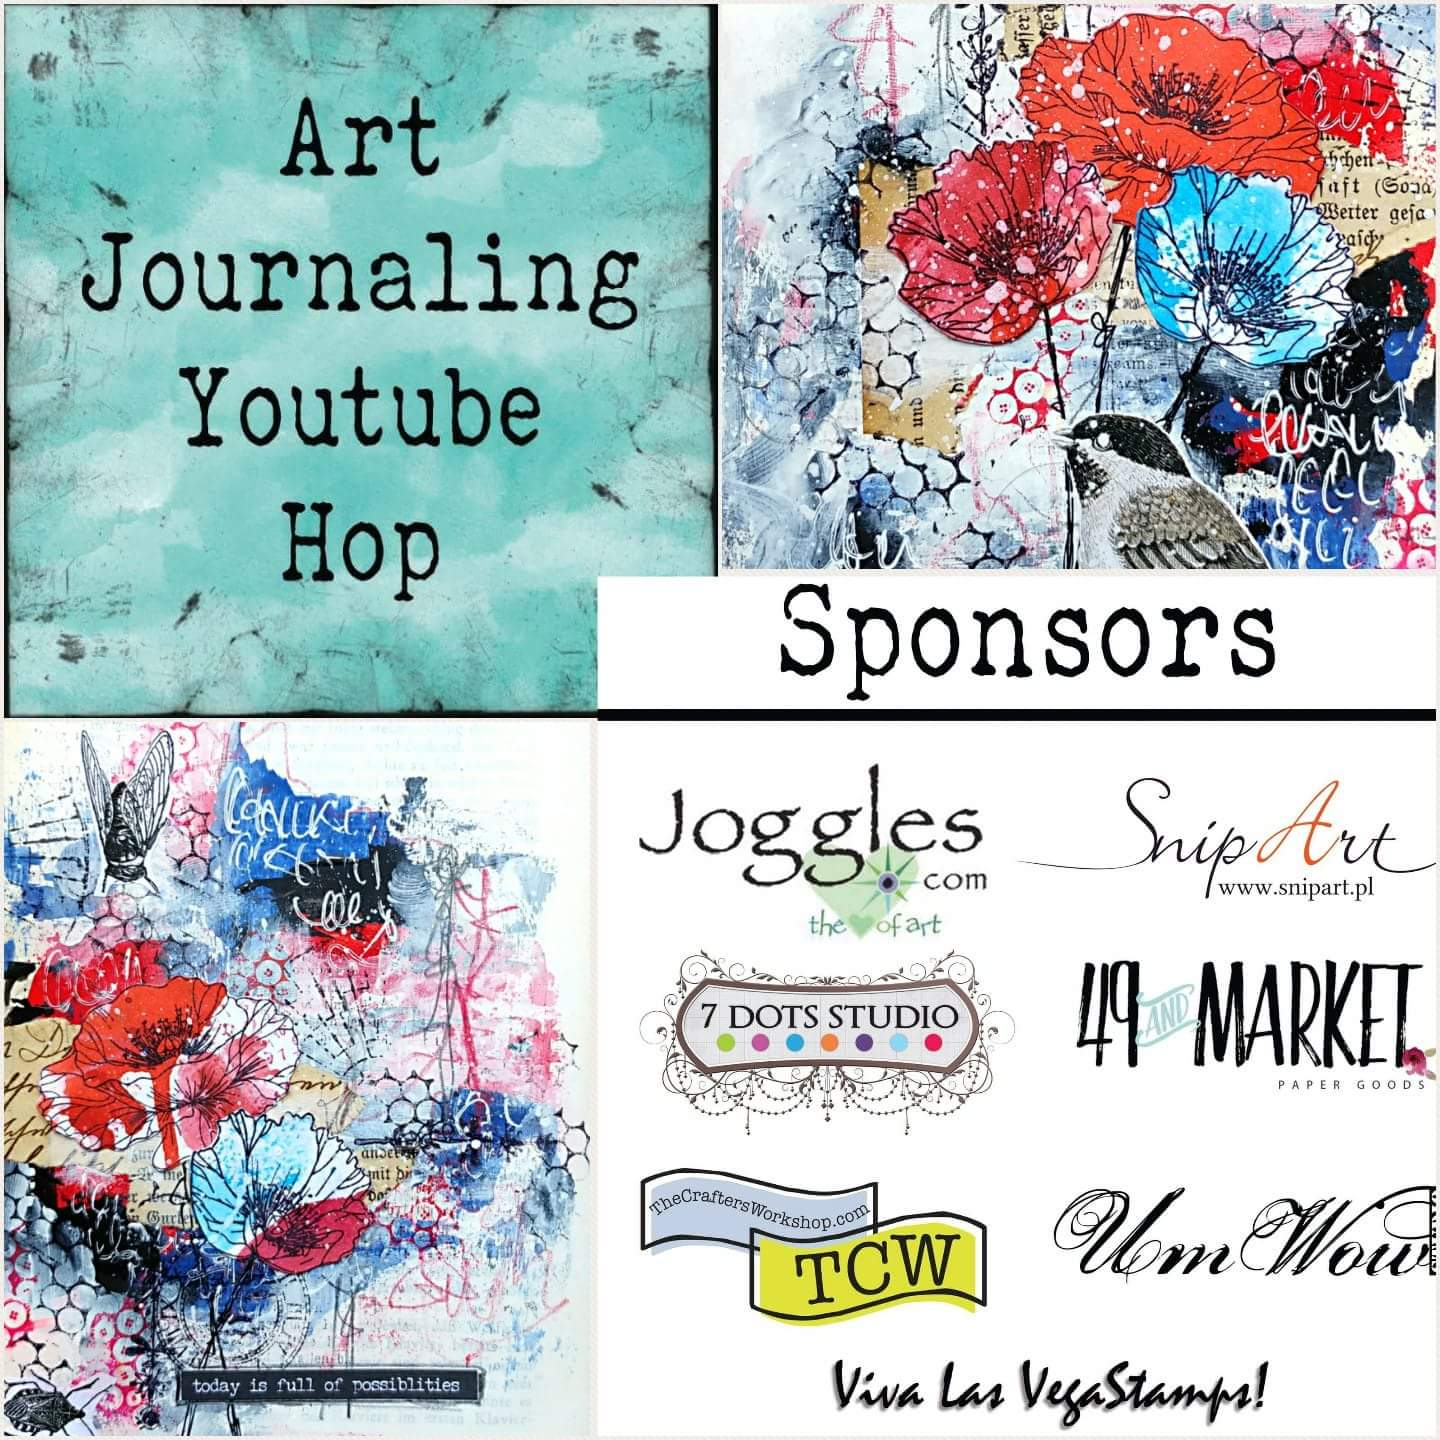 Art Journaling YouTube Hop